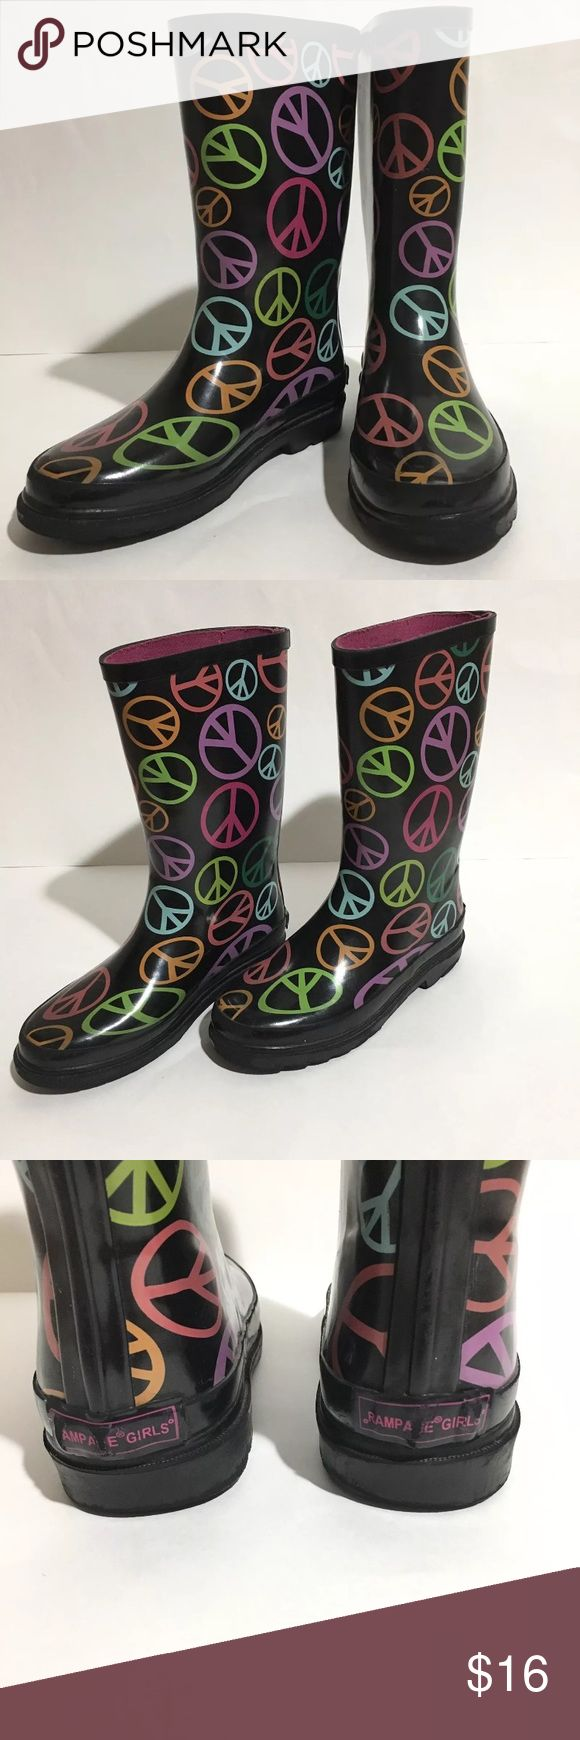 Girls Rampage Black Peace Sign Rubber Rain Boots 3 Rampage girls black Rubber Rain boots with Multicolor peace signs. Size 3 (youth) Excellent condition slight signs of wear *See Pictures* Rampage Shoes Rain & Snow Boots